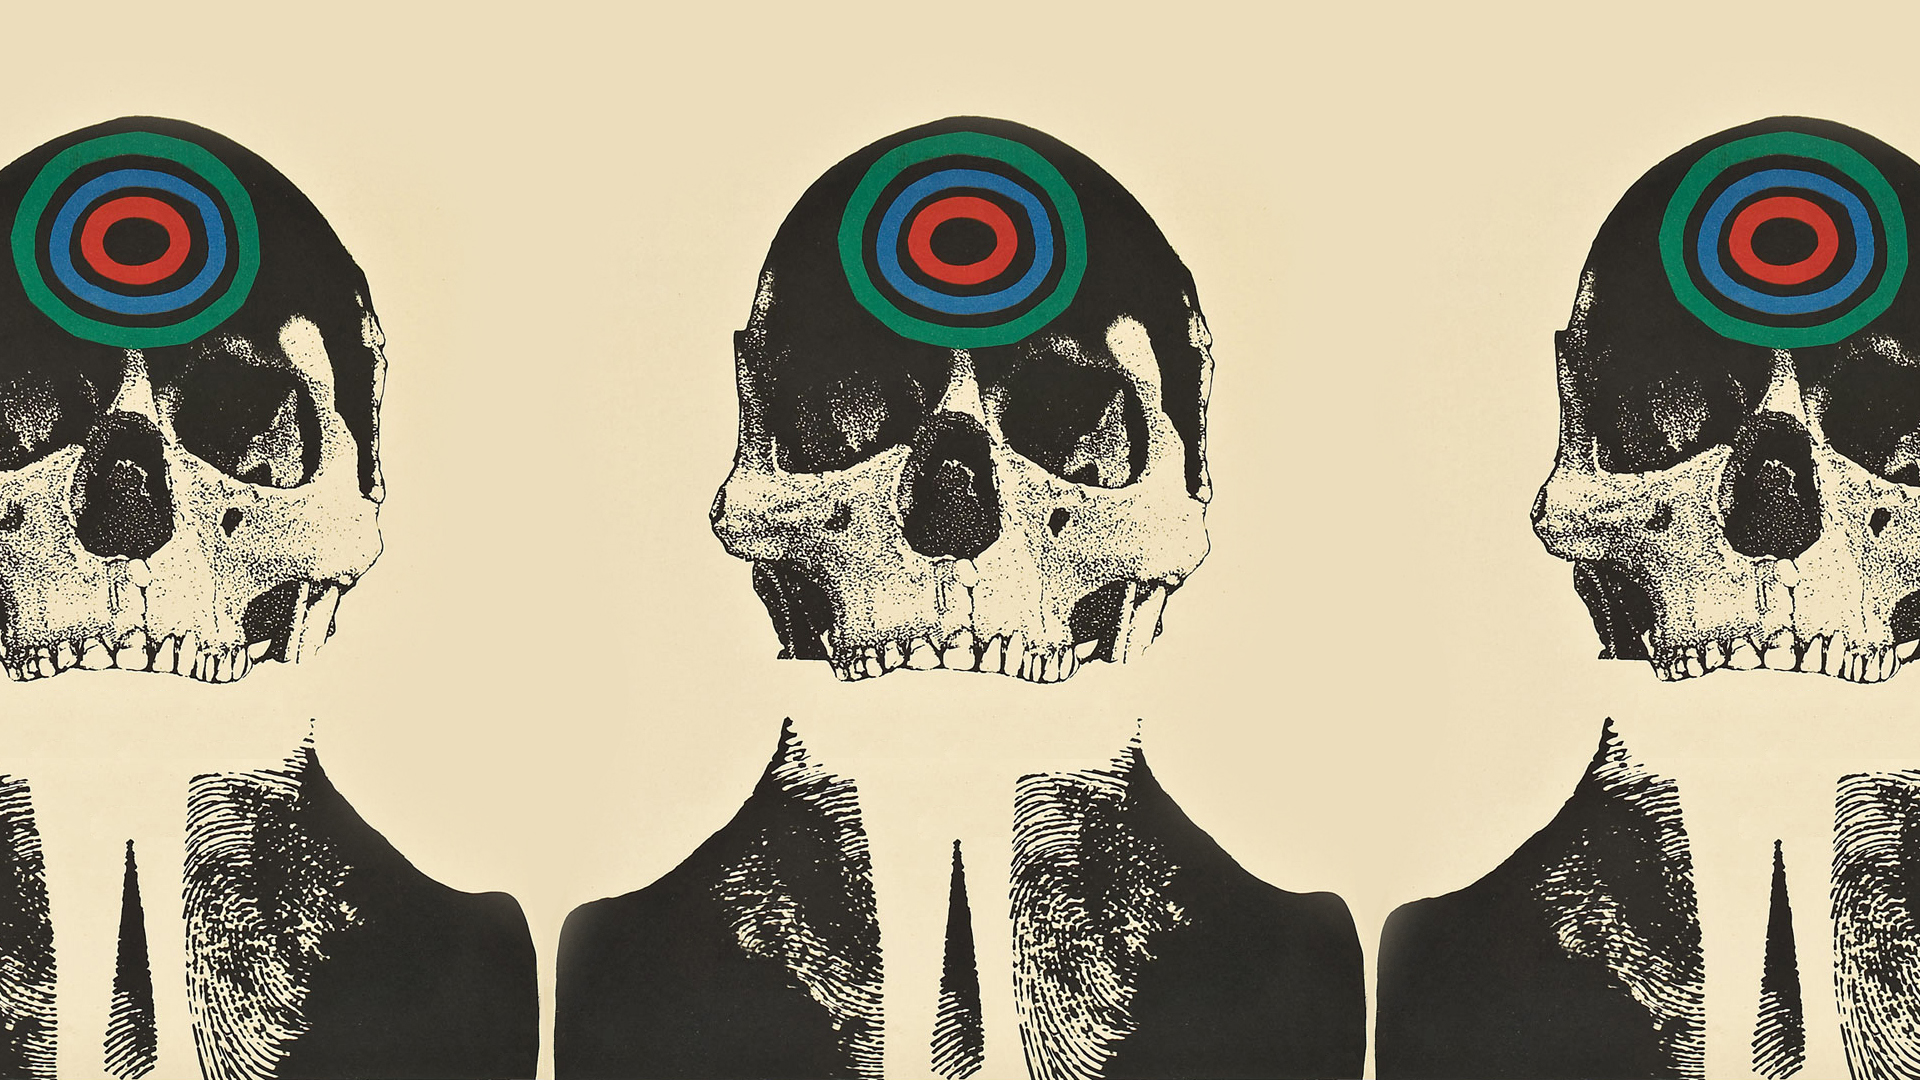 download abstract skull 320x480 - photo #22